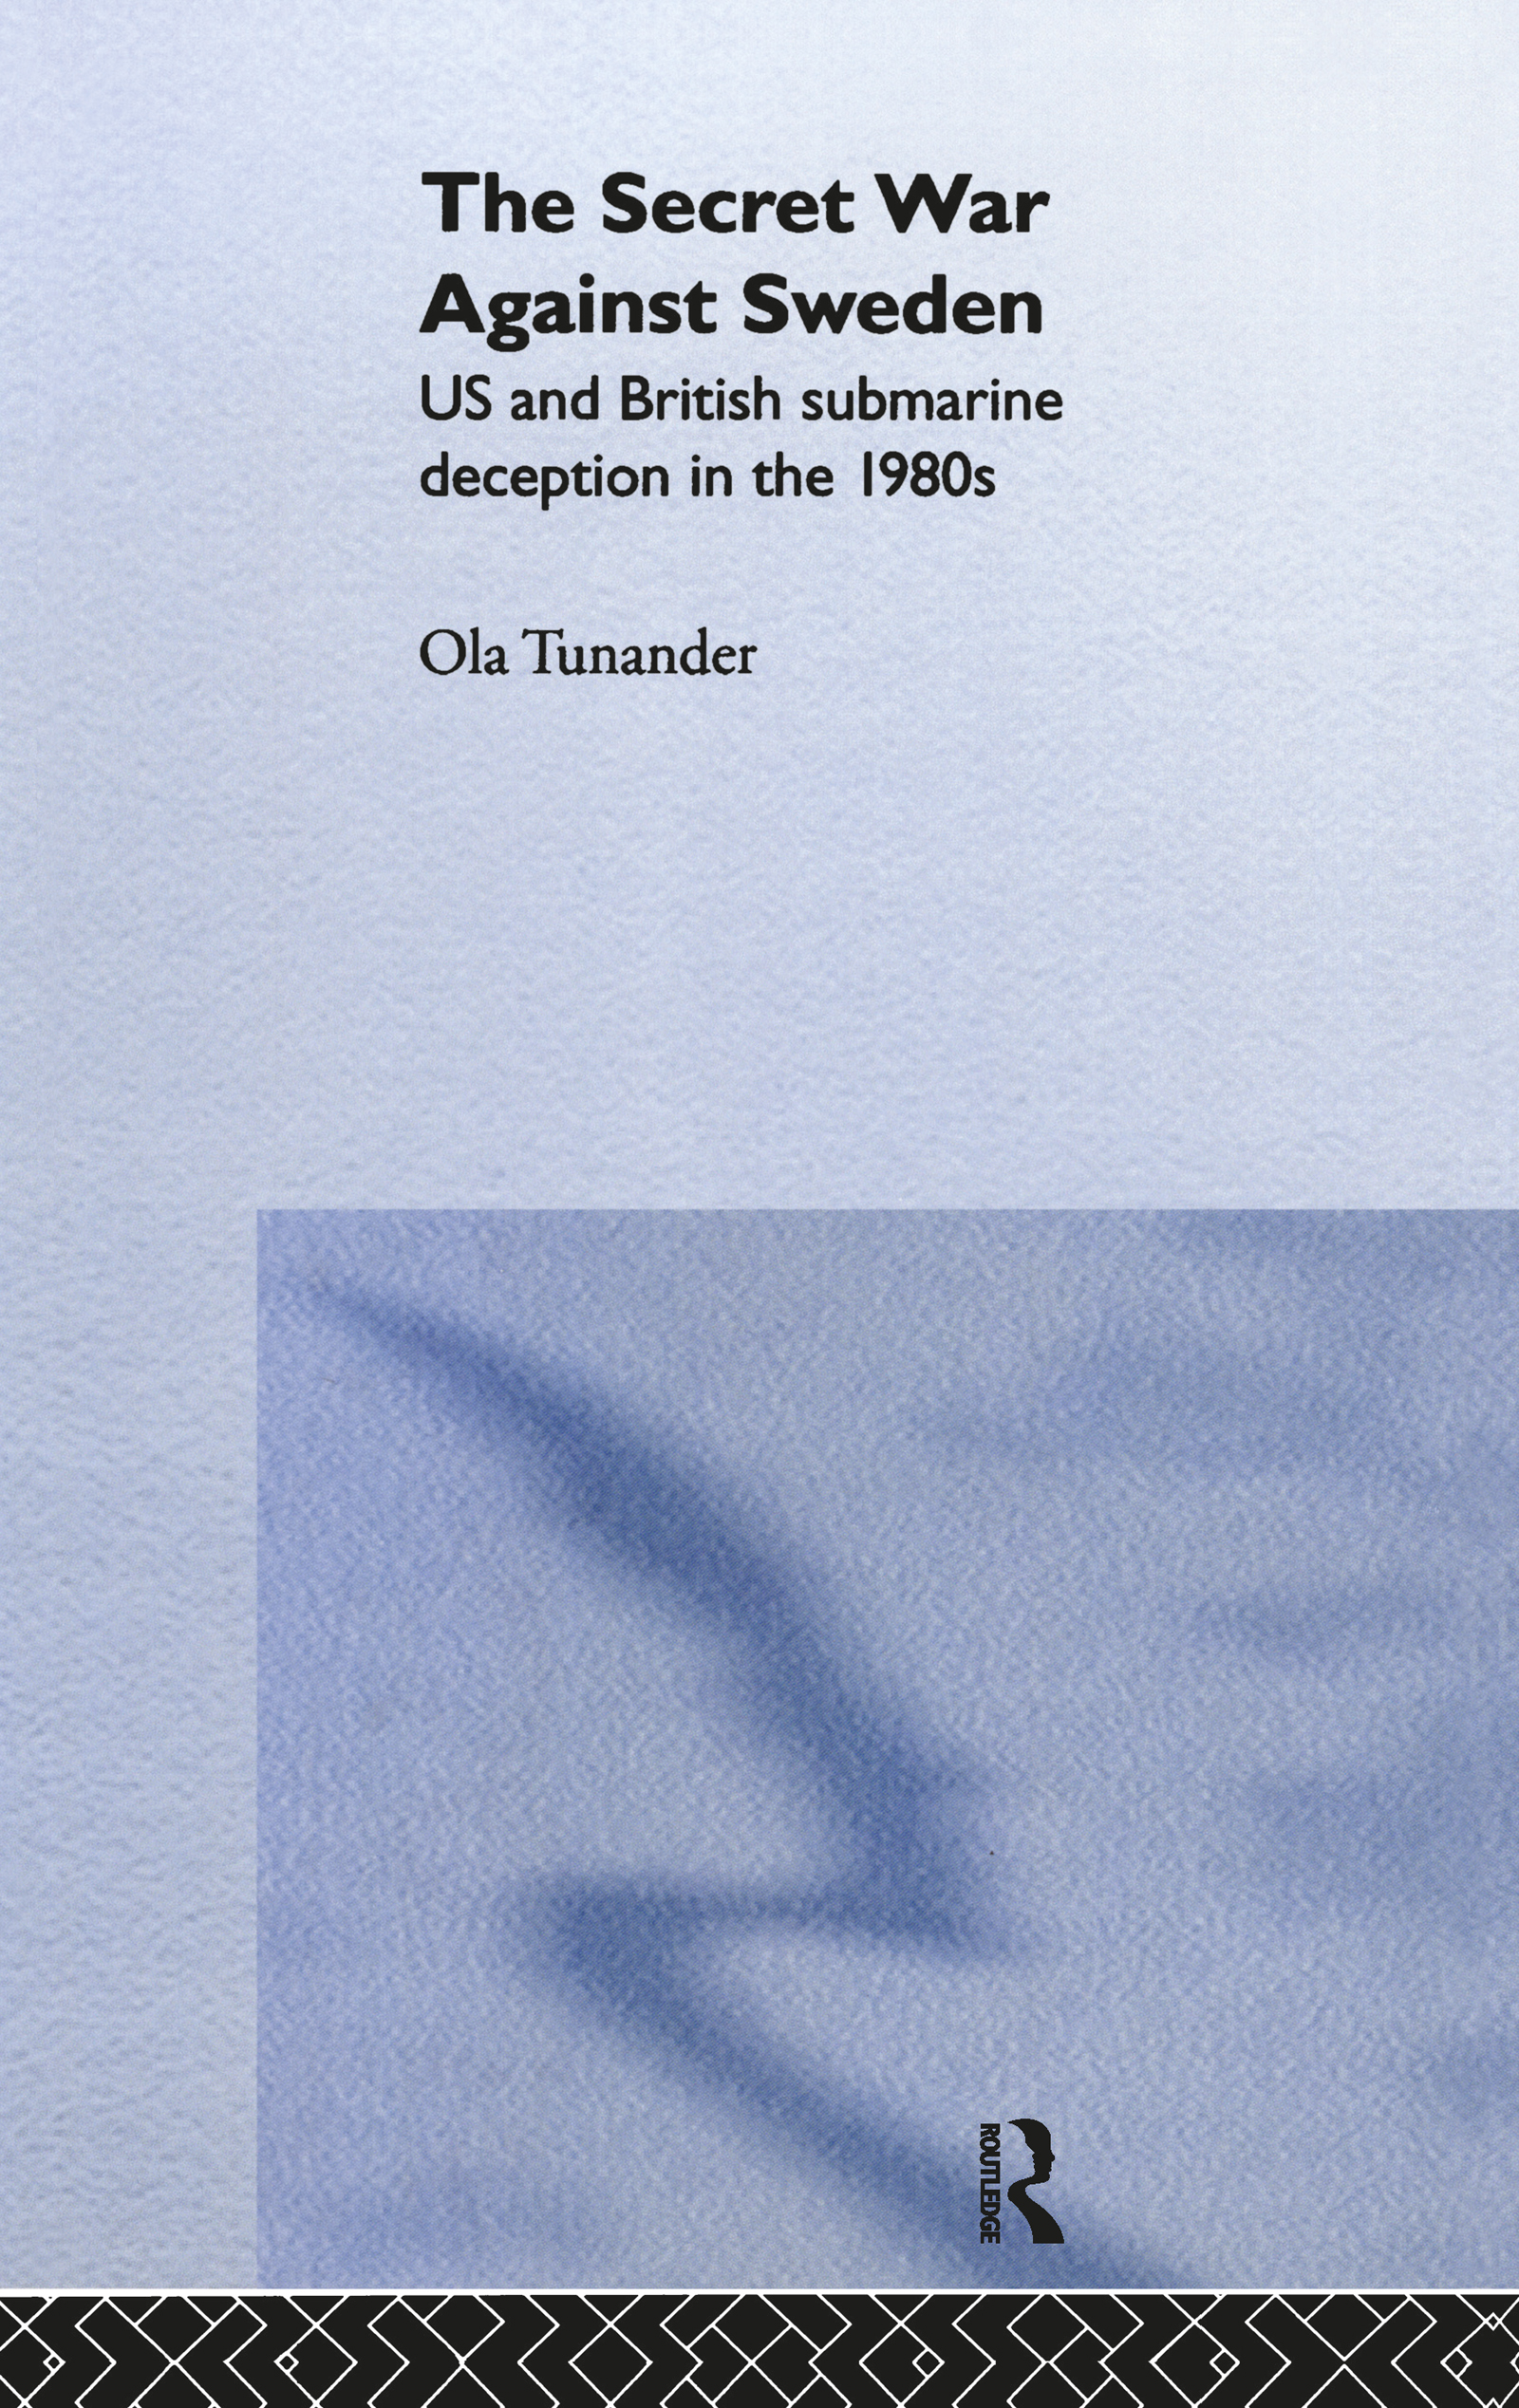 The Secret War Against Sweden: US and British Submarine Deception in the 1980s book cover